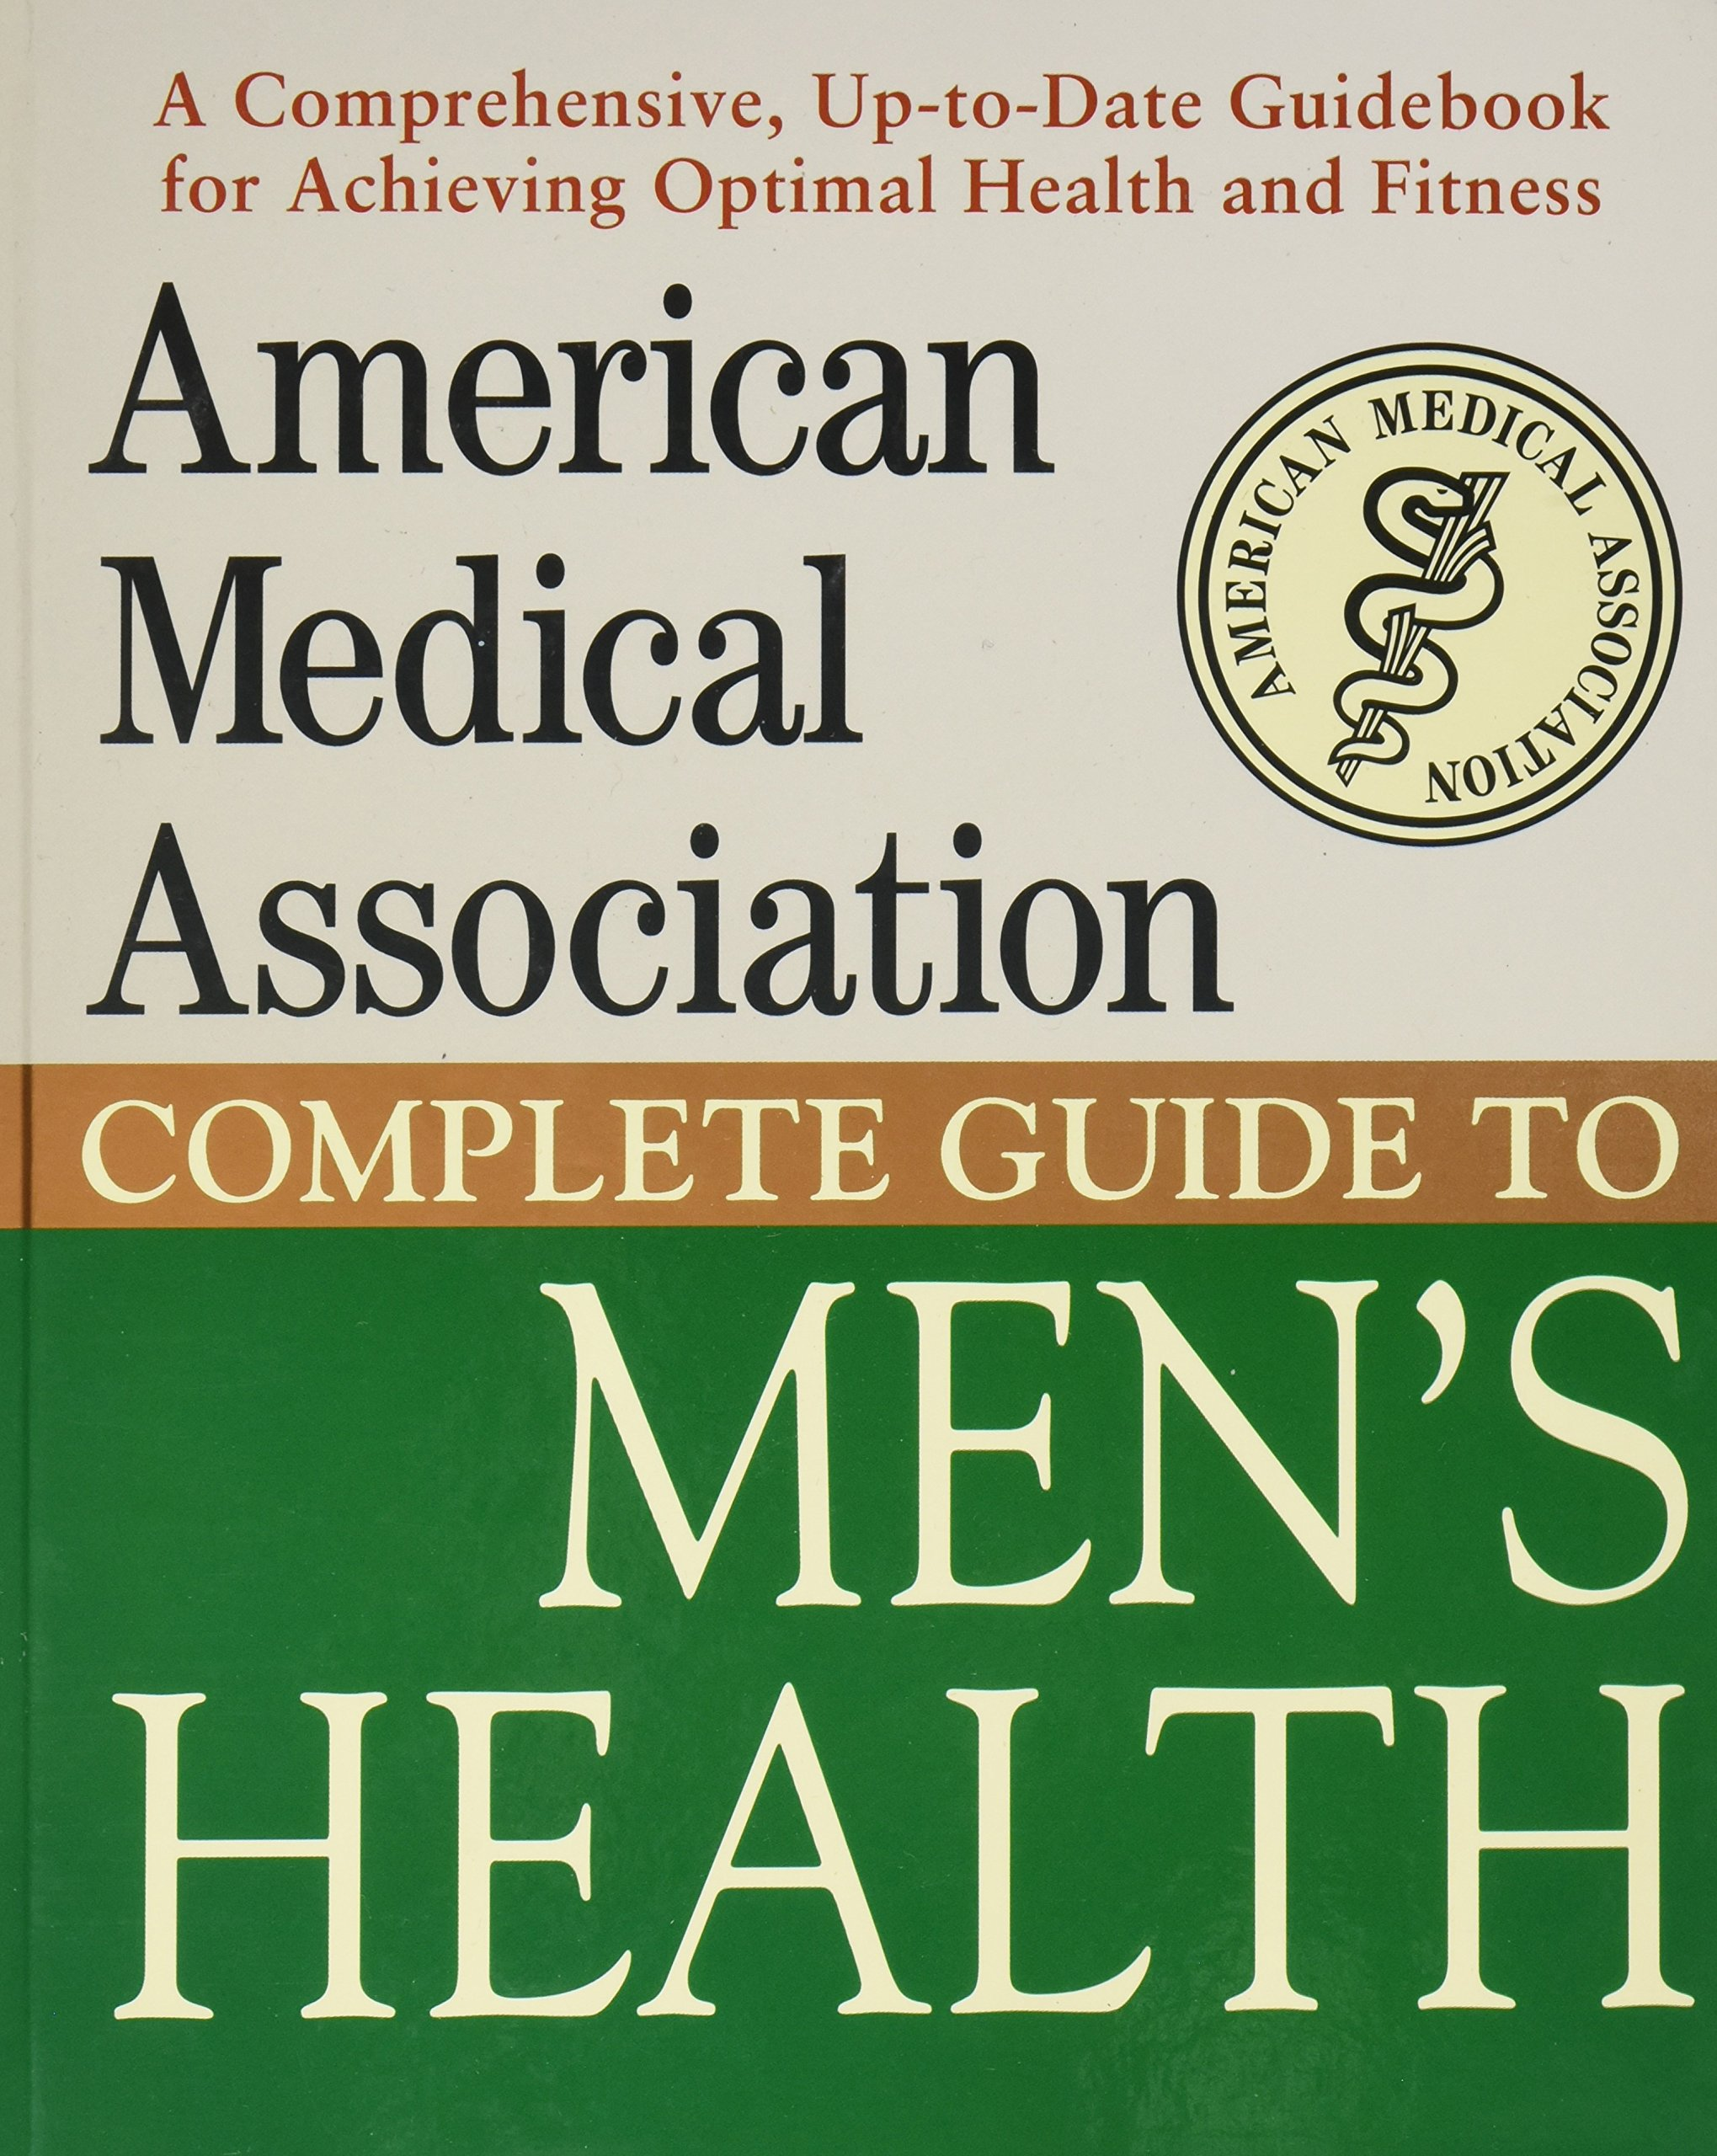 Download Complete Guide to Men's Health (AMERICAN MEDICAL ASSOCIATION) ebook